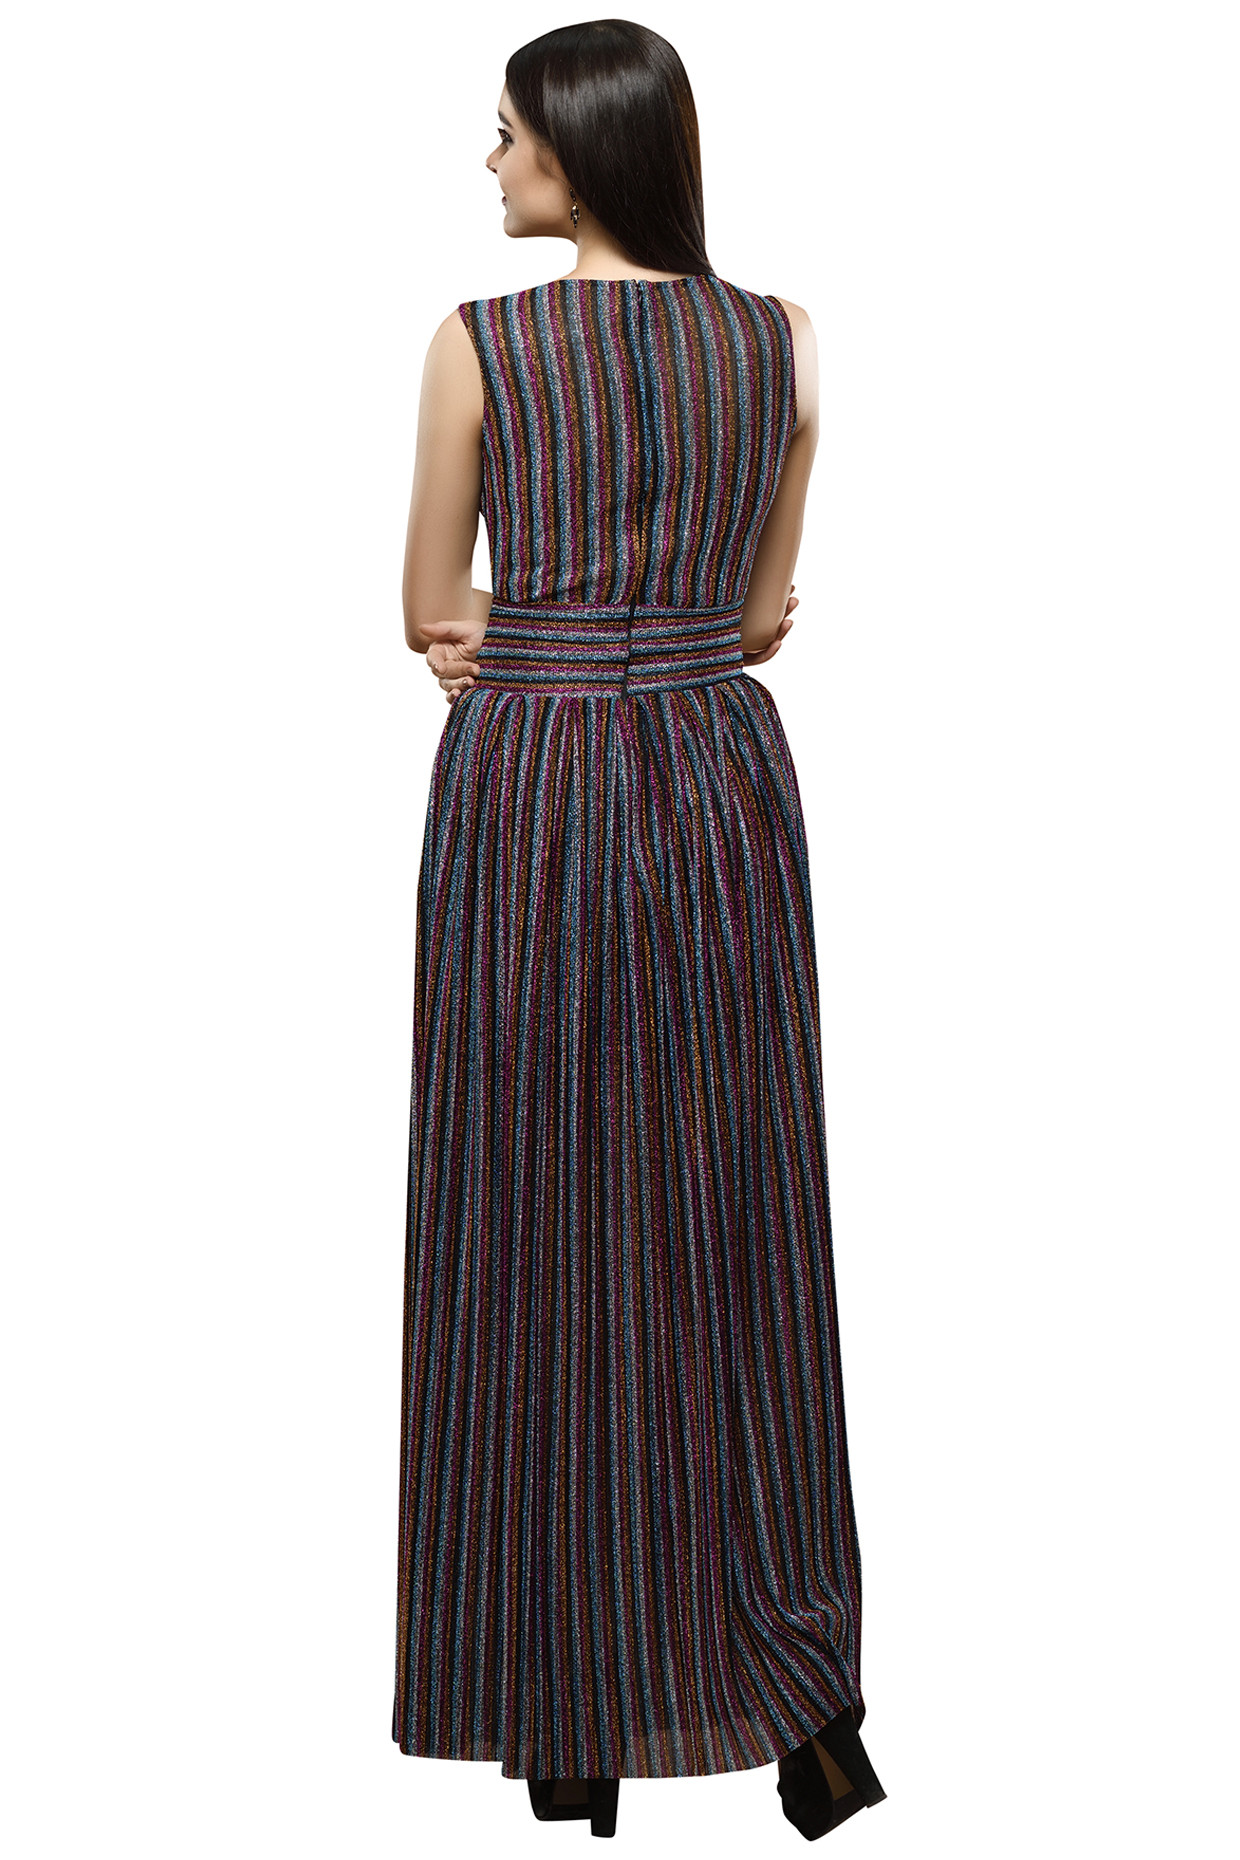 Multicolored Striped Maxi Dress by RS by Rippi Sethi